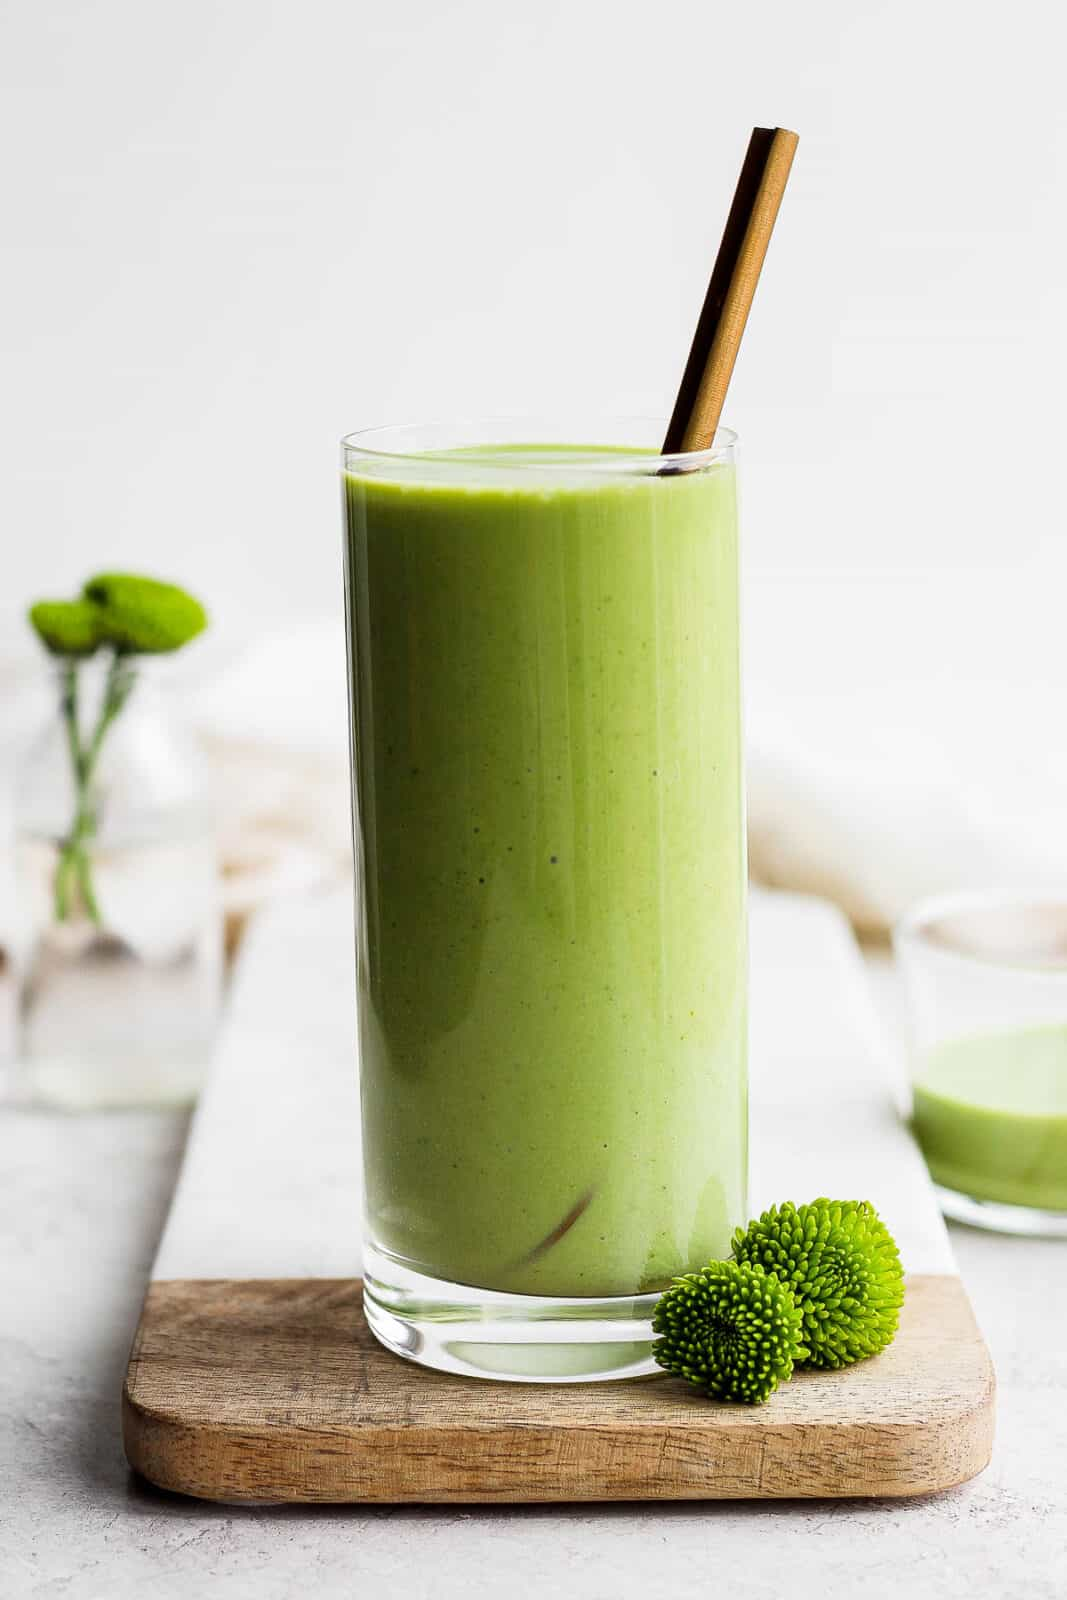 Green smoothie in a glass with a spoon in it.